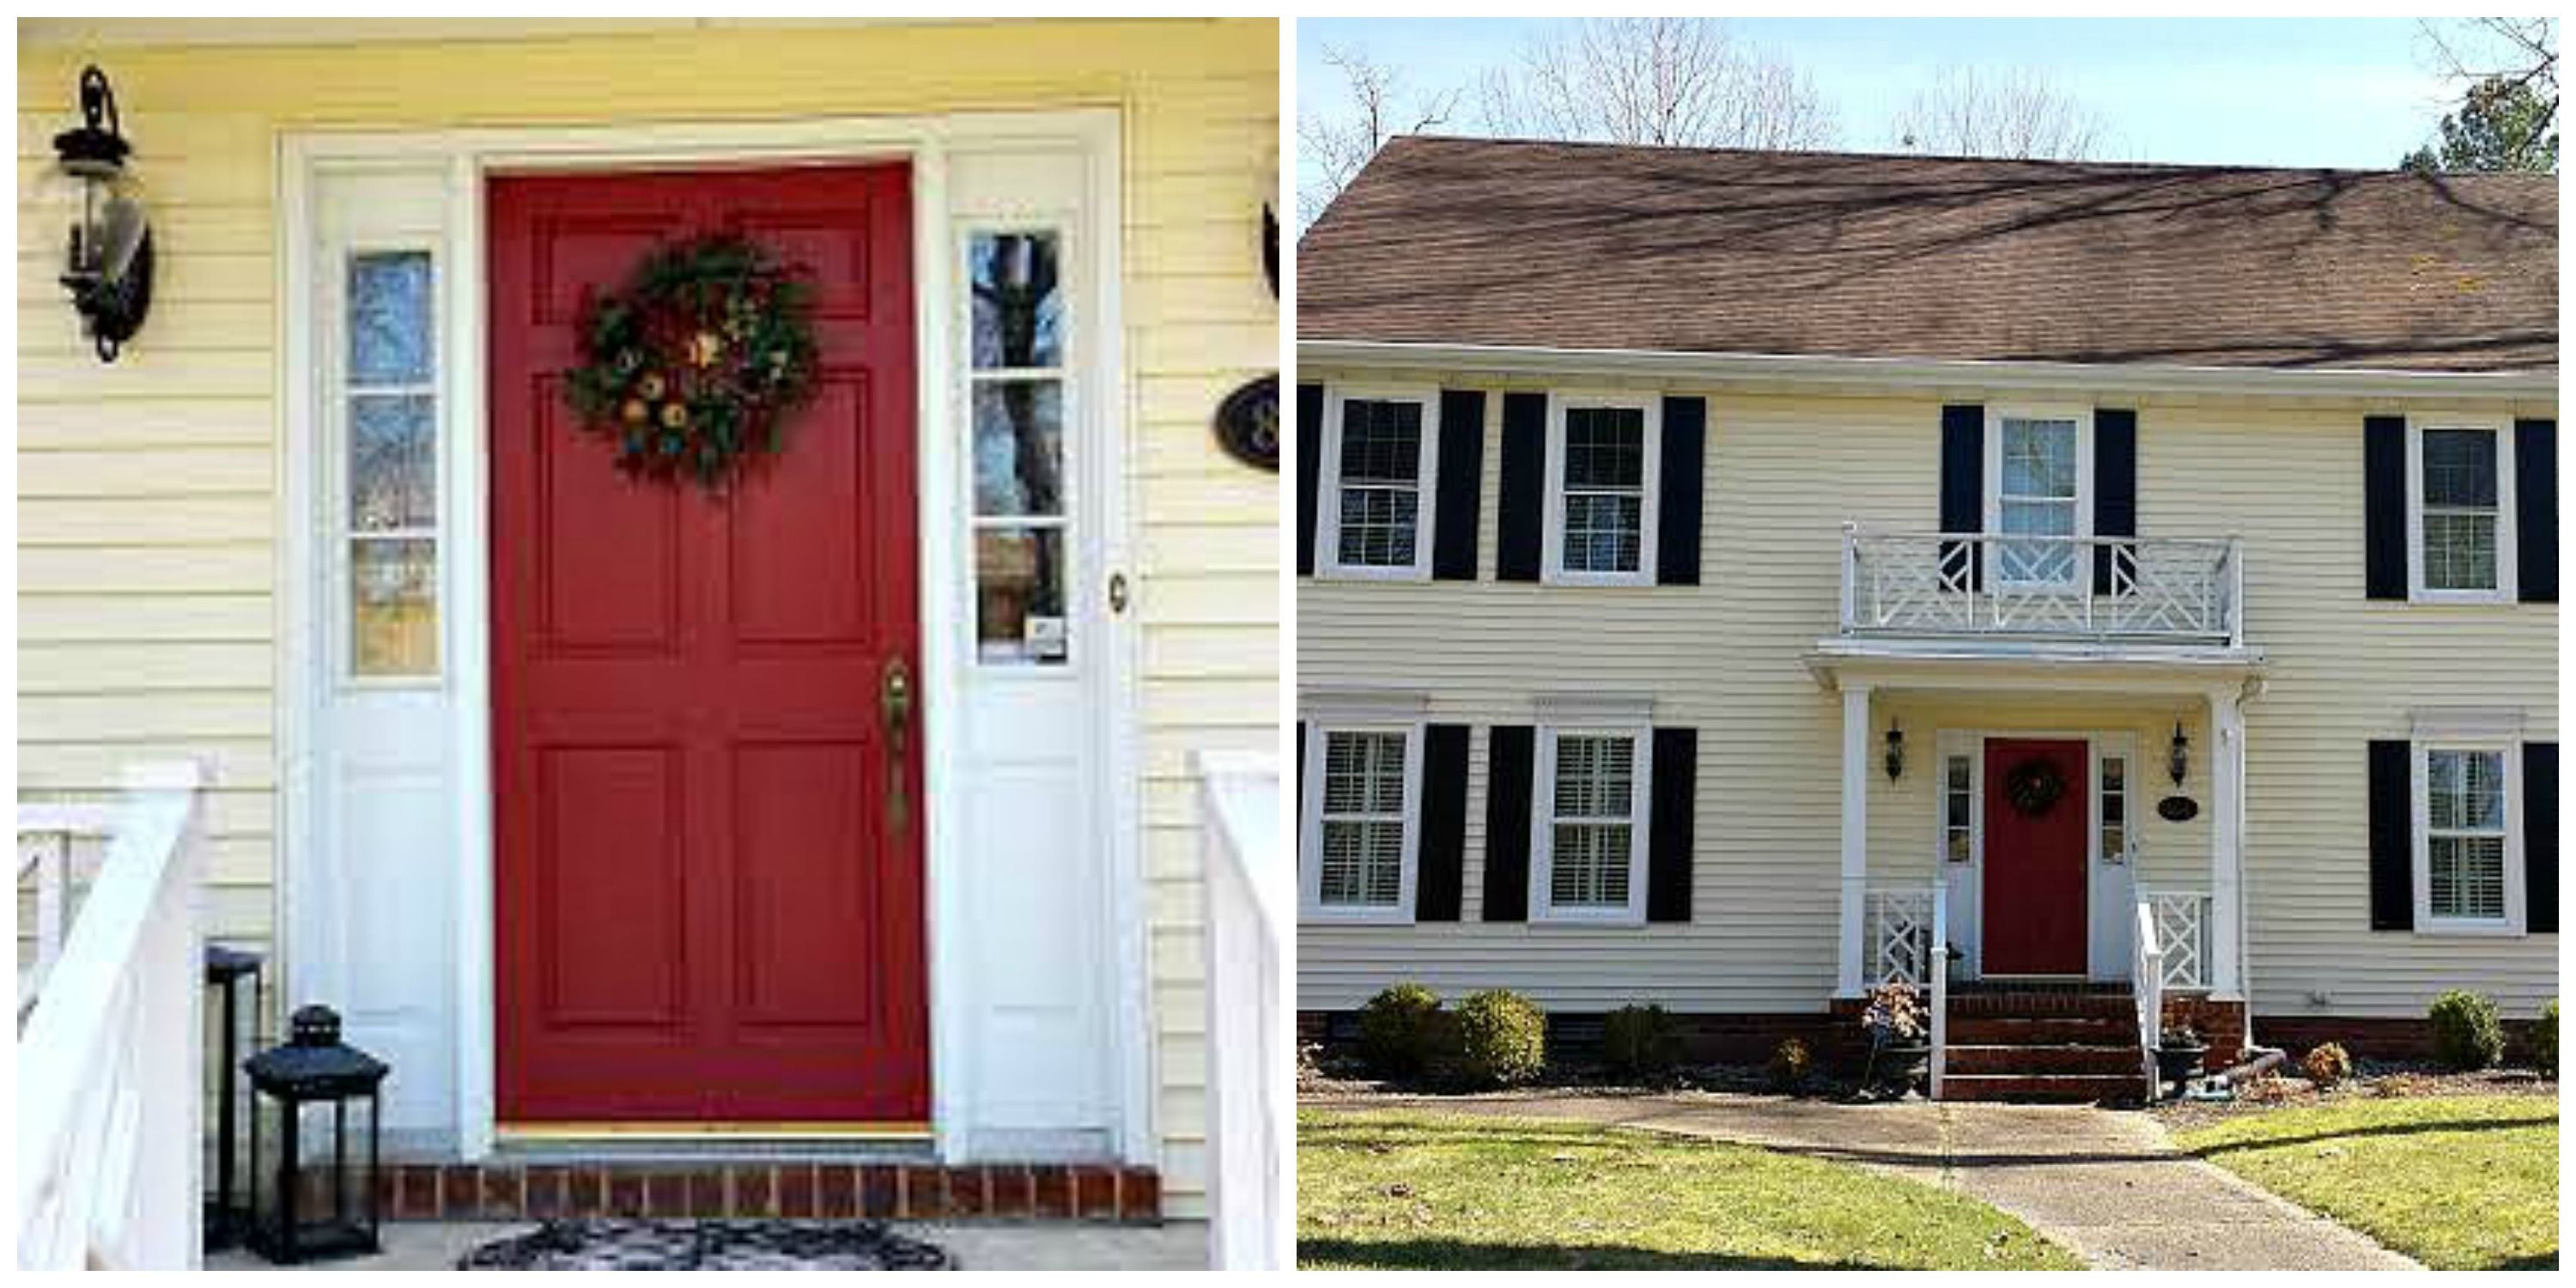 Cottage Red French Doors Exterior Yellow House White Trim Google